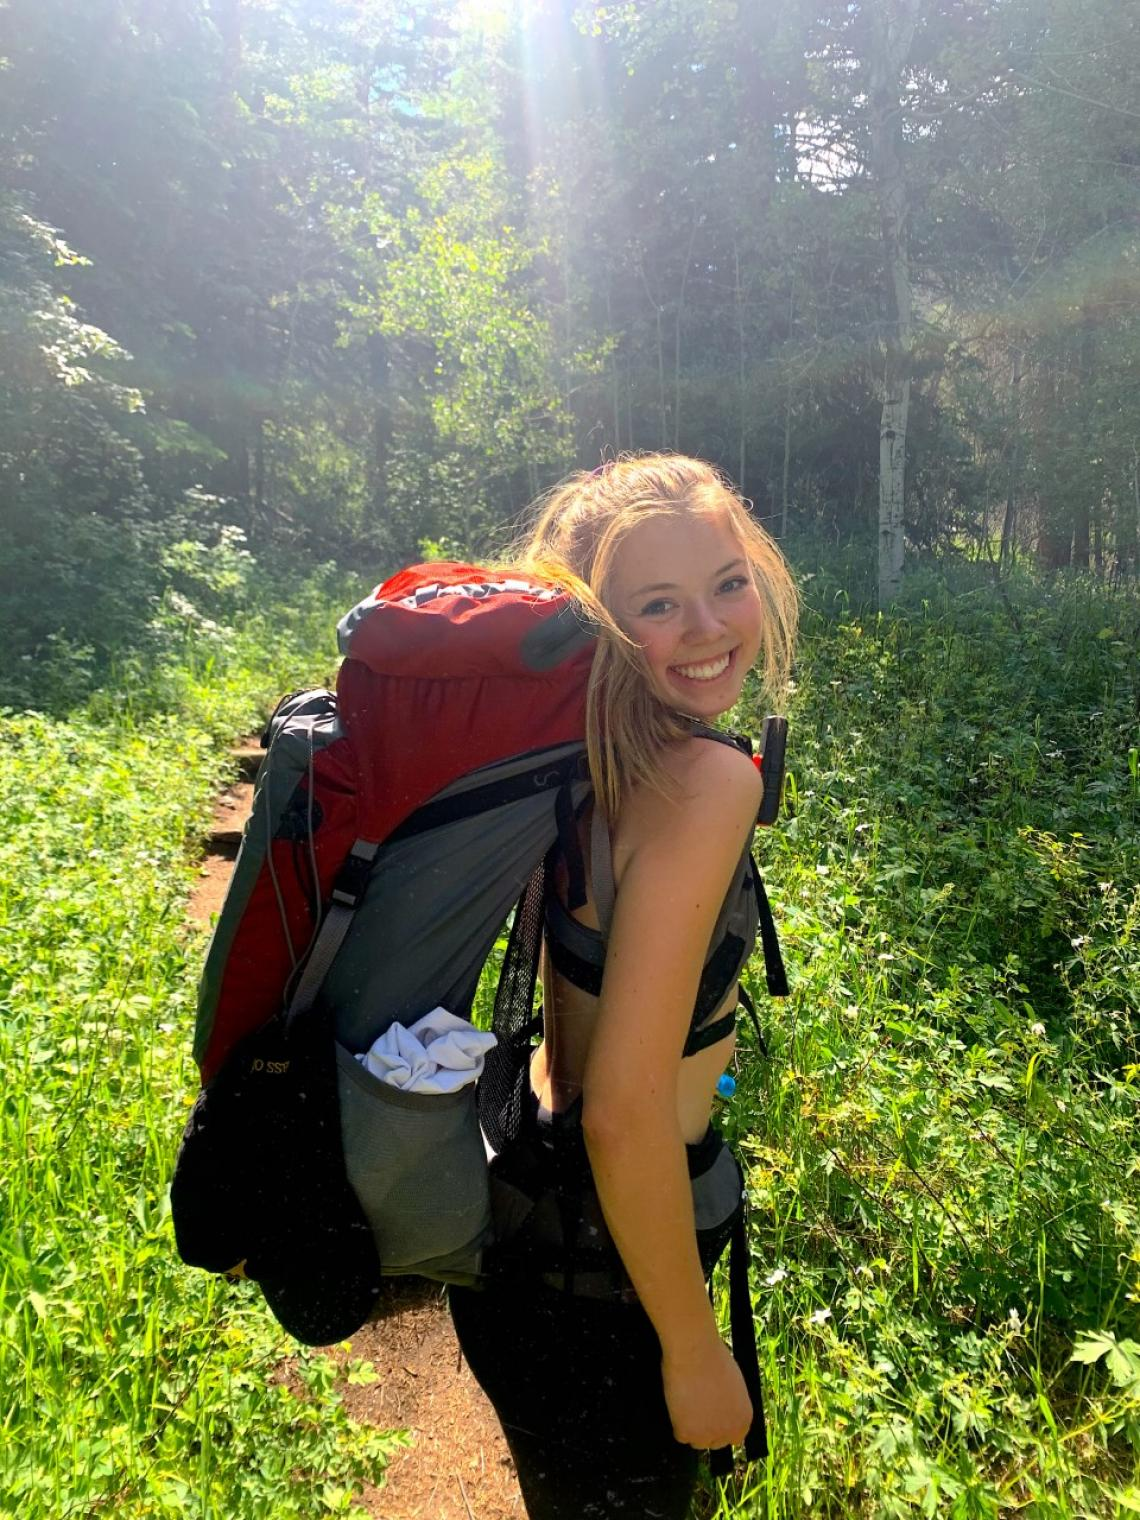 Jeri Wilcox with a backpacking pack on in a forest